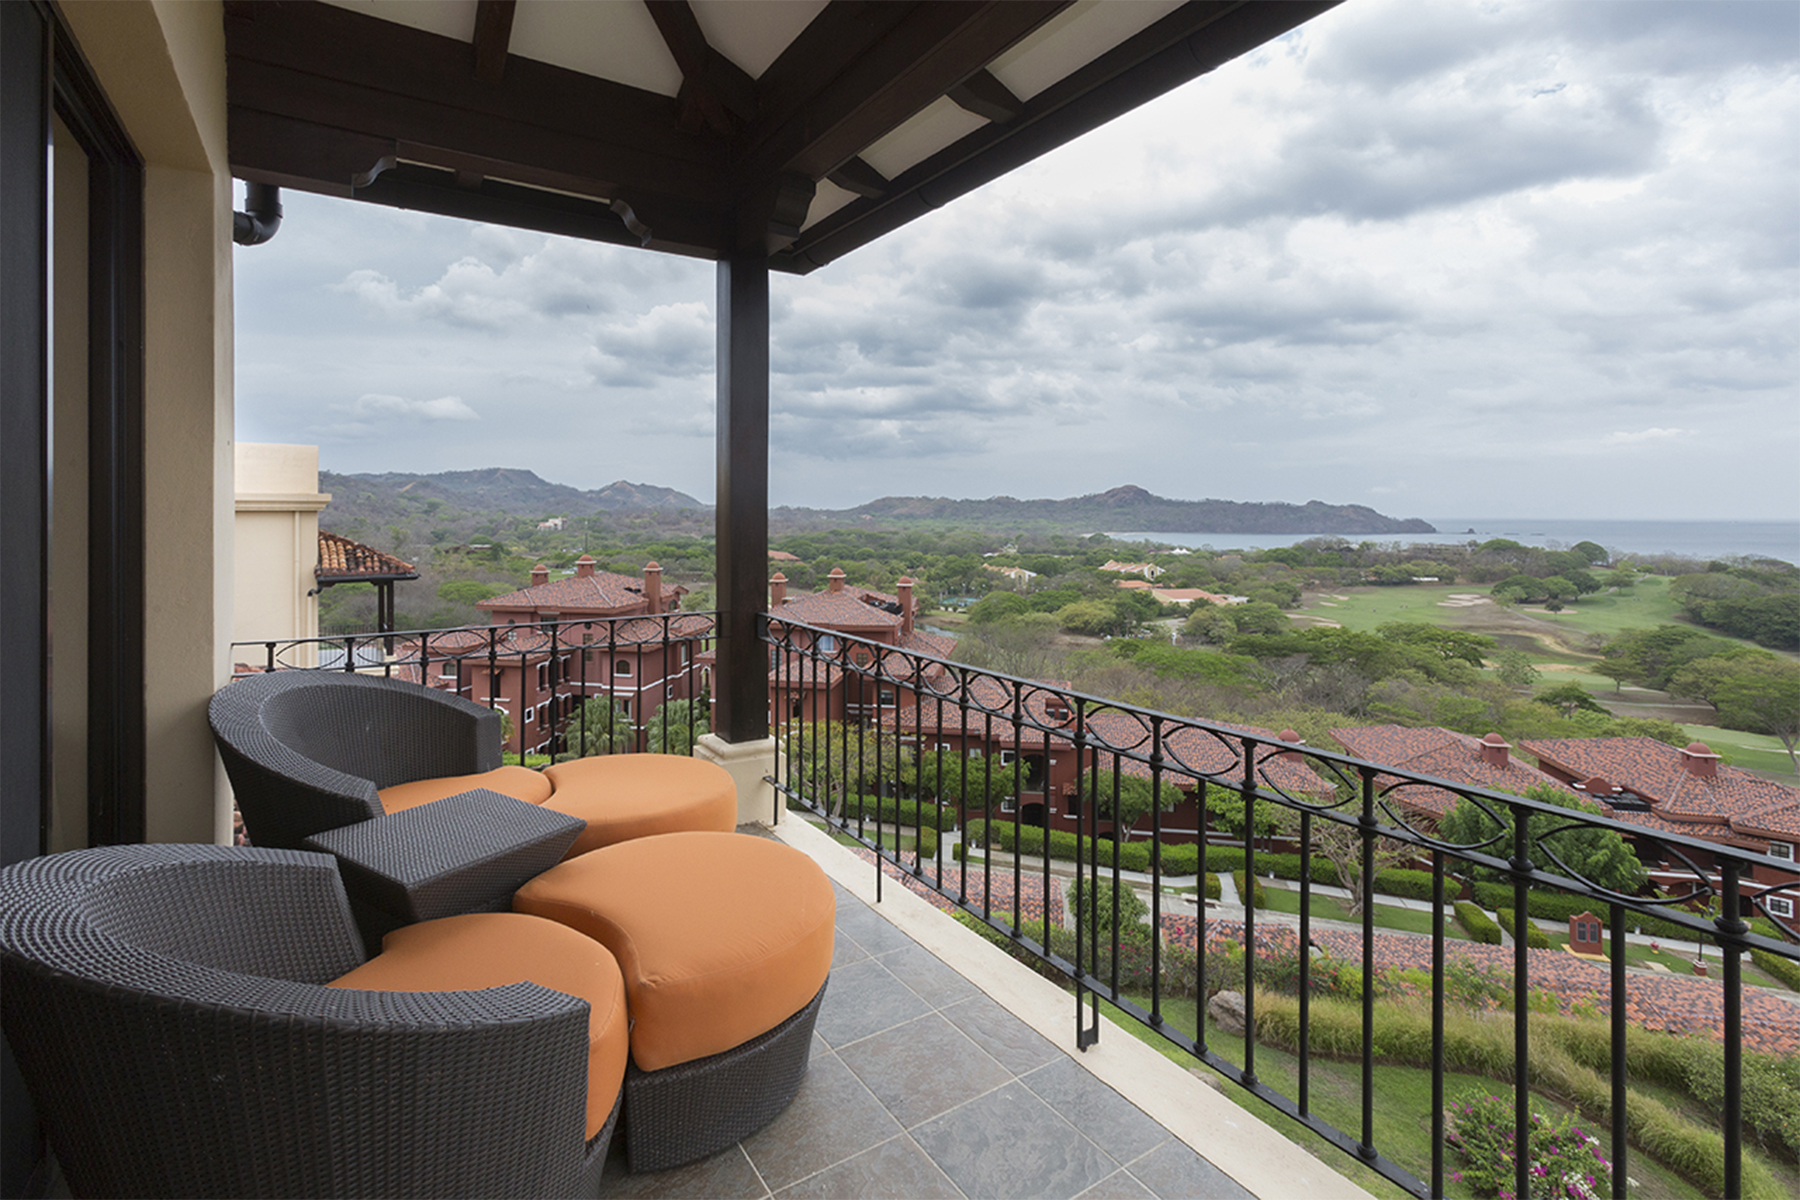 Additional photo for property listing at Malinche 49A  Reserva Conchal, Guanacaste 50308 Costa Rica